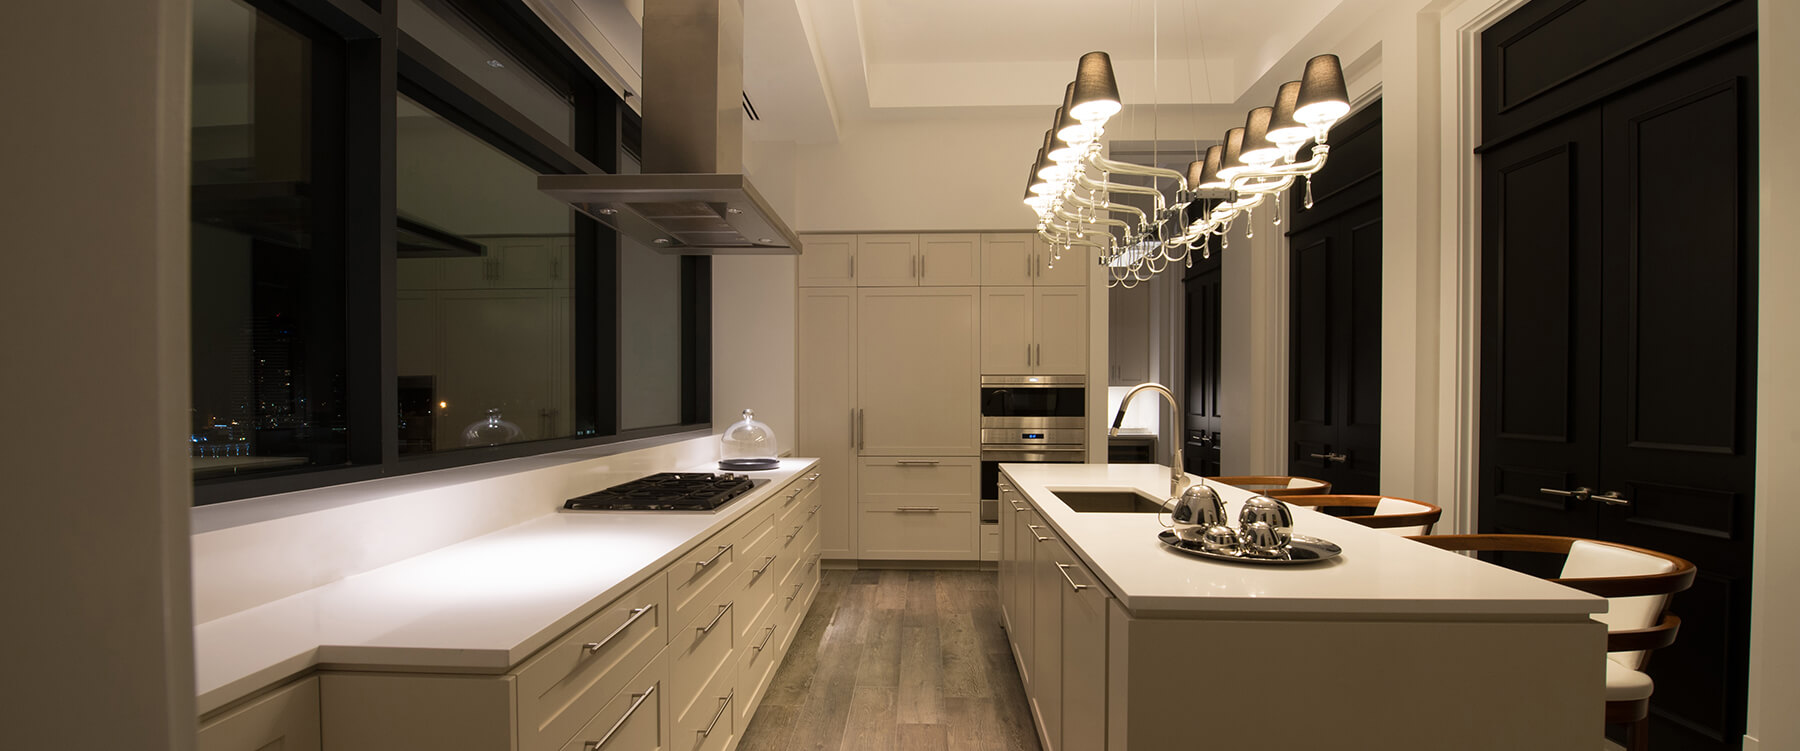 kitchen at urban penthouse